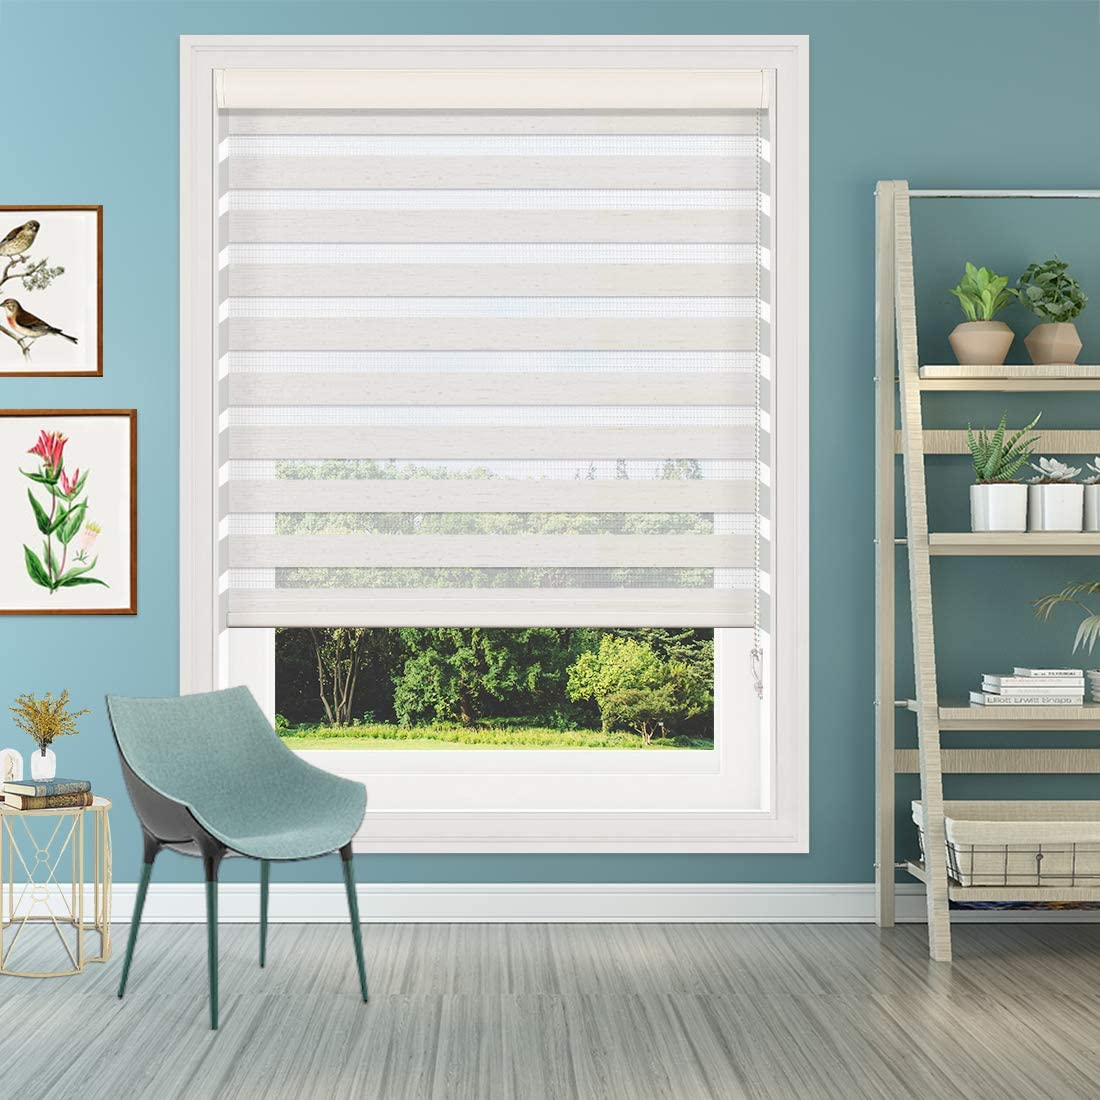 Keego Window Blinds Custom Cut to Size, Hemp Zebra Blinds with Dual Layer Roller Shades, Size W 58 x H 60 Dual Layer Sheer or Privacy Light Control for Day and Night